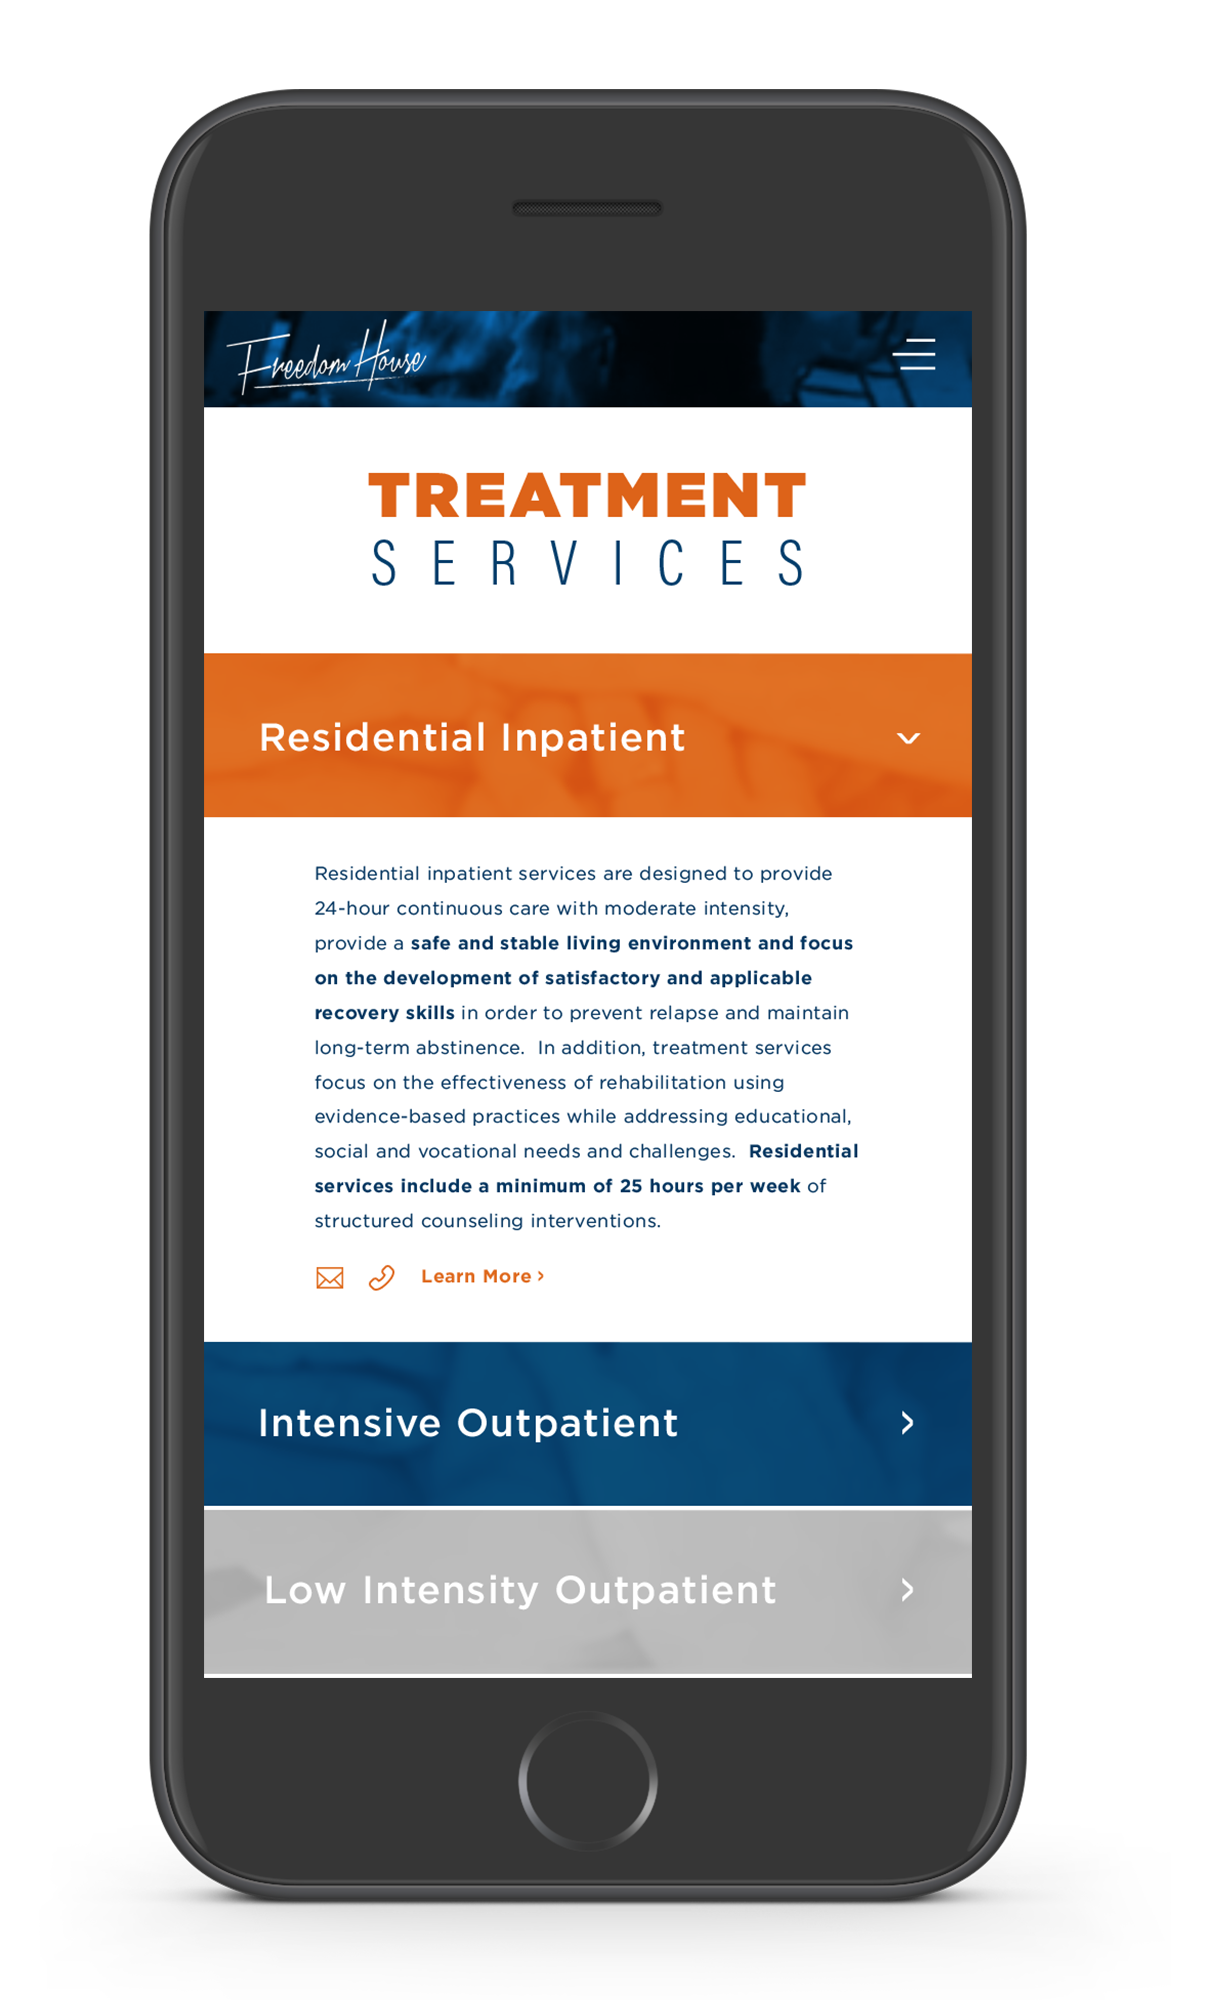 Treatment Services - The mobile version of the treatment page shows different drop down of each specific service to keep the information condensed & not overwhelm the user.